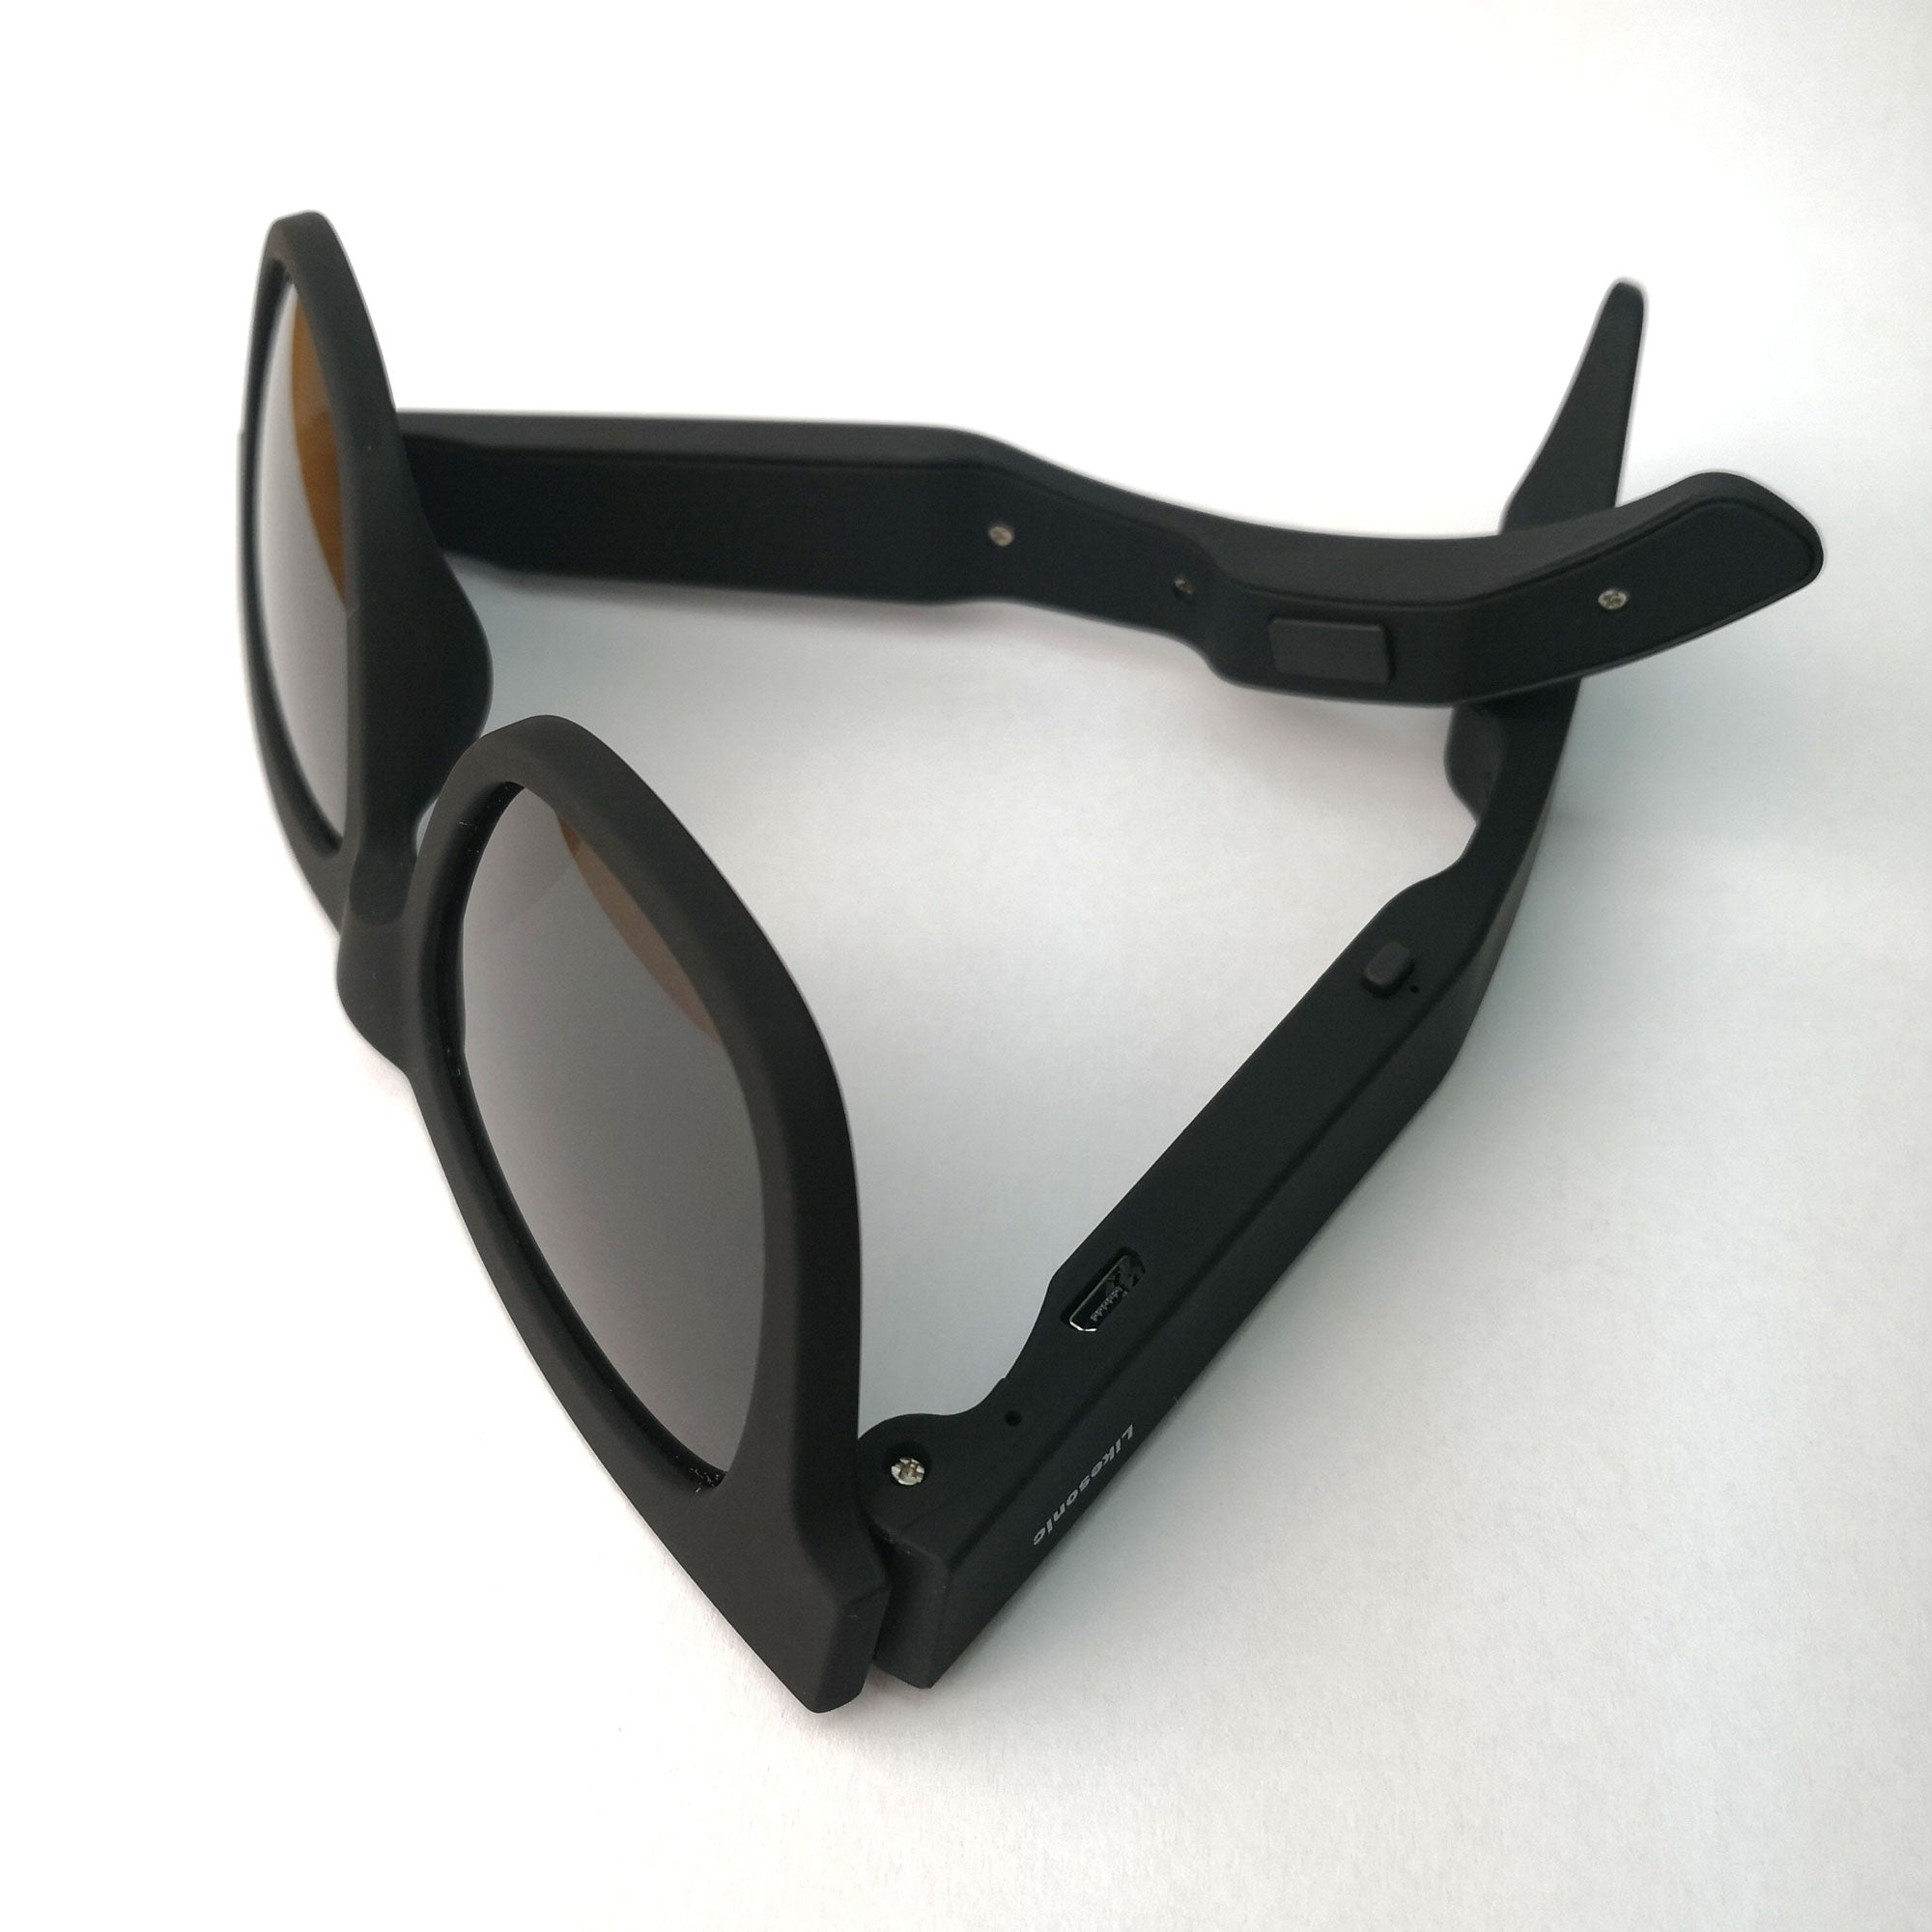 Likesonic Bone Conduction Sunglasses - Button